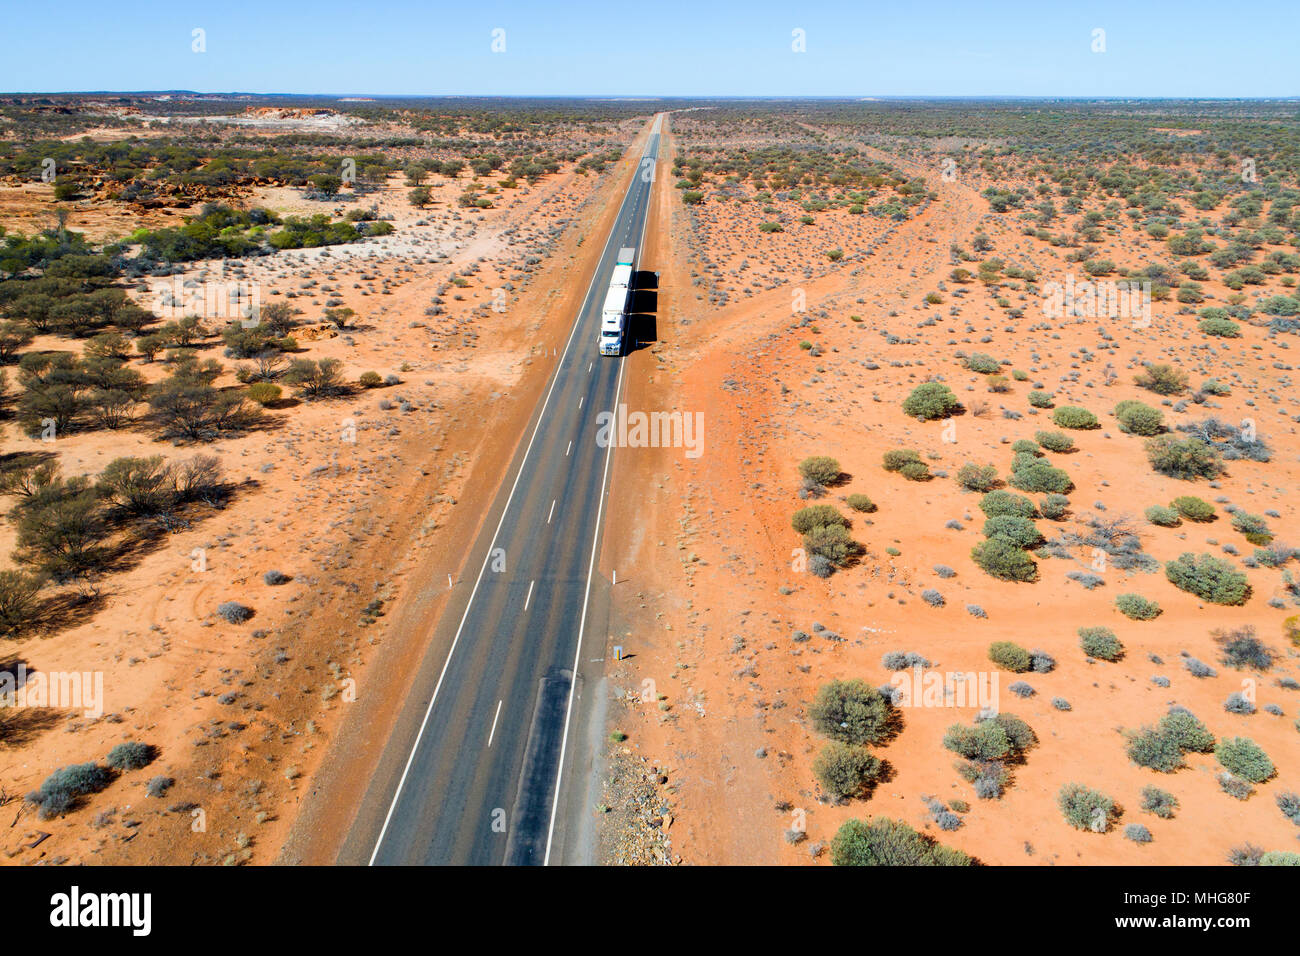 Road Train truck traveling on the great northern highway, Eastern Goldfields, Western Australia Stock Photo